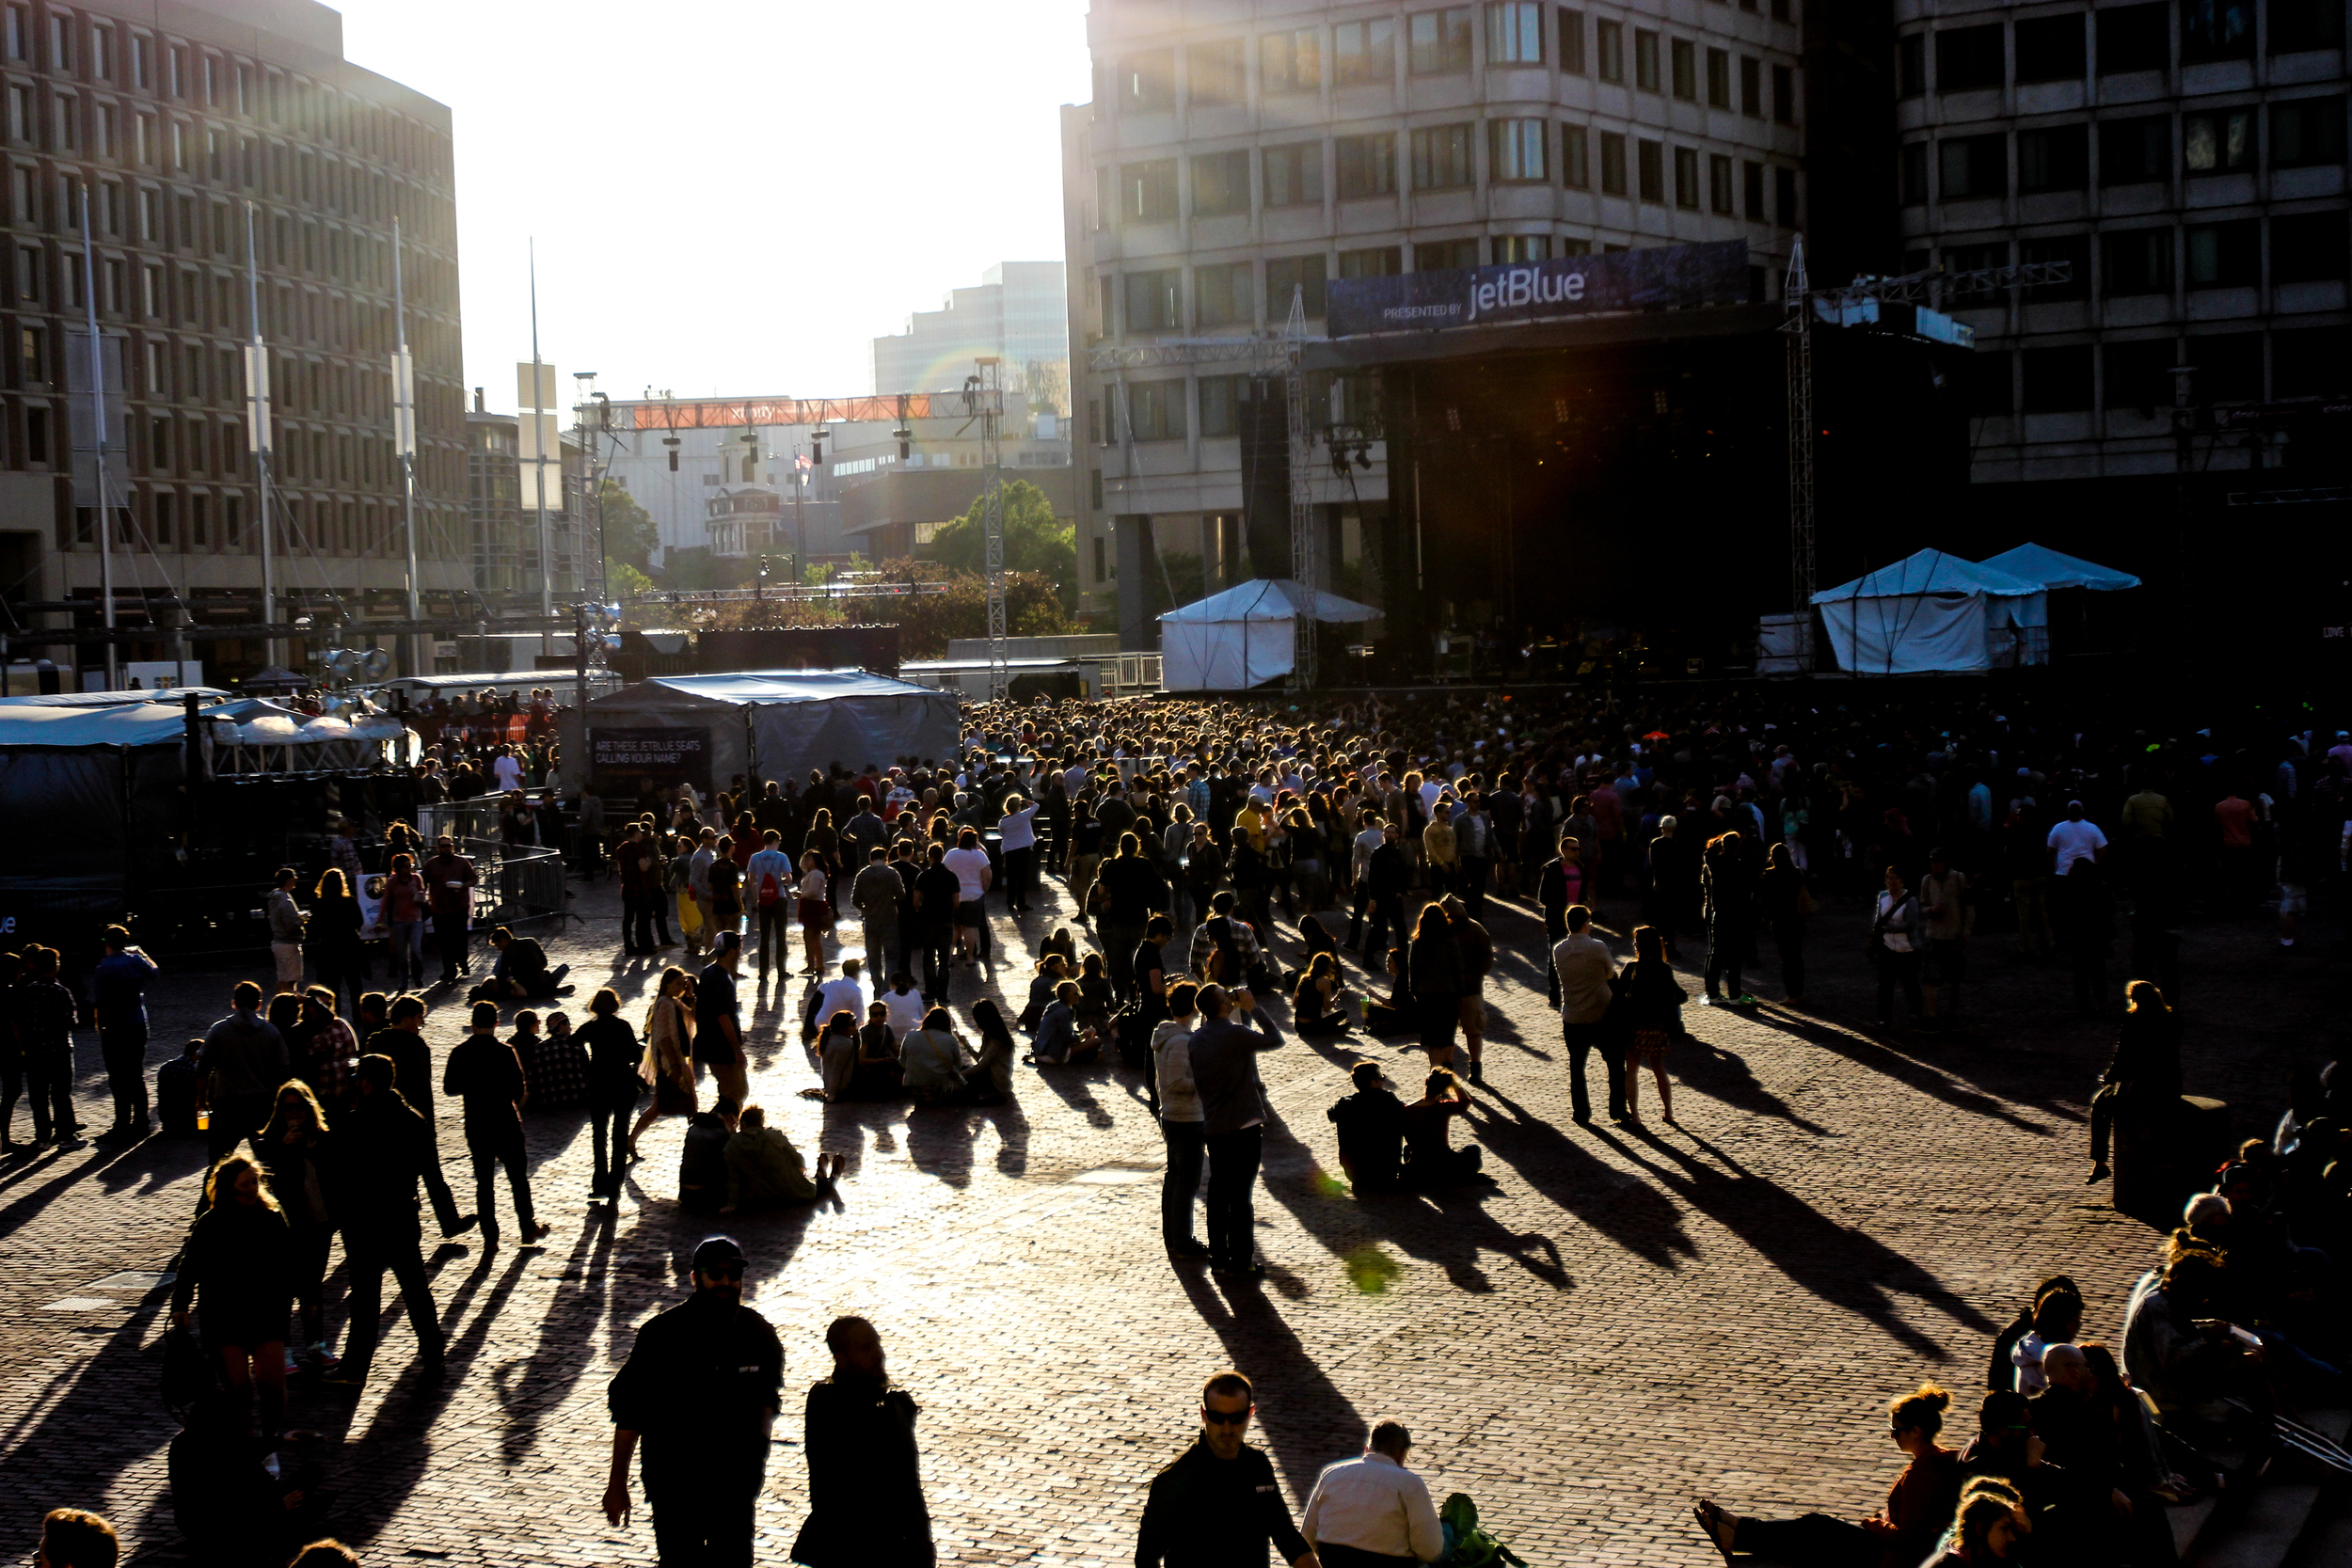 Attendees gather on May 22, 2015 for the first day of Boston Calling in City Hall Plaza.